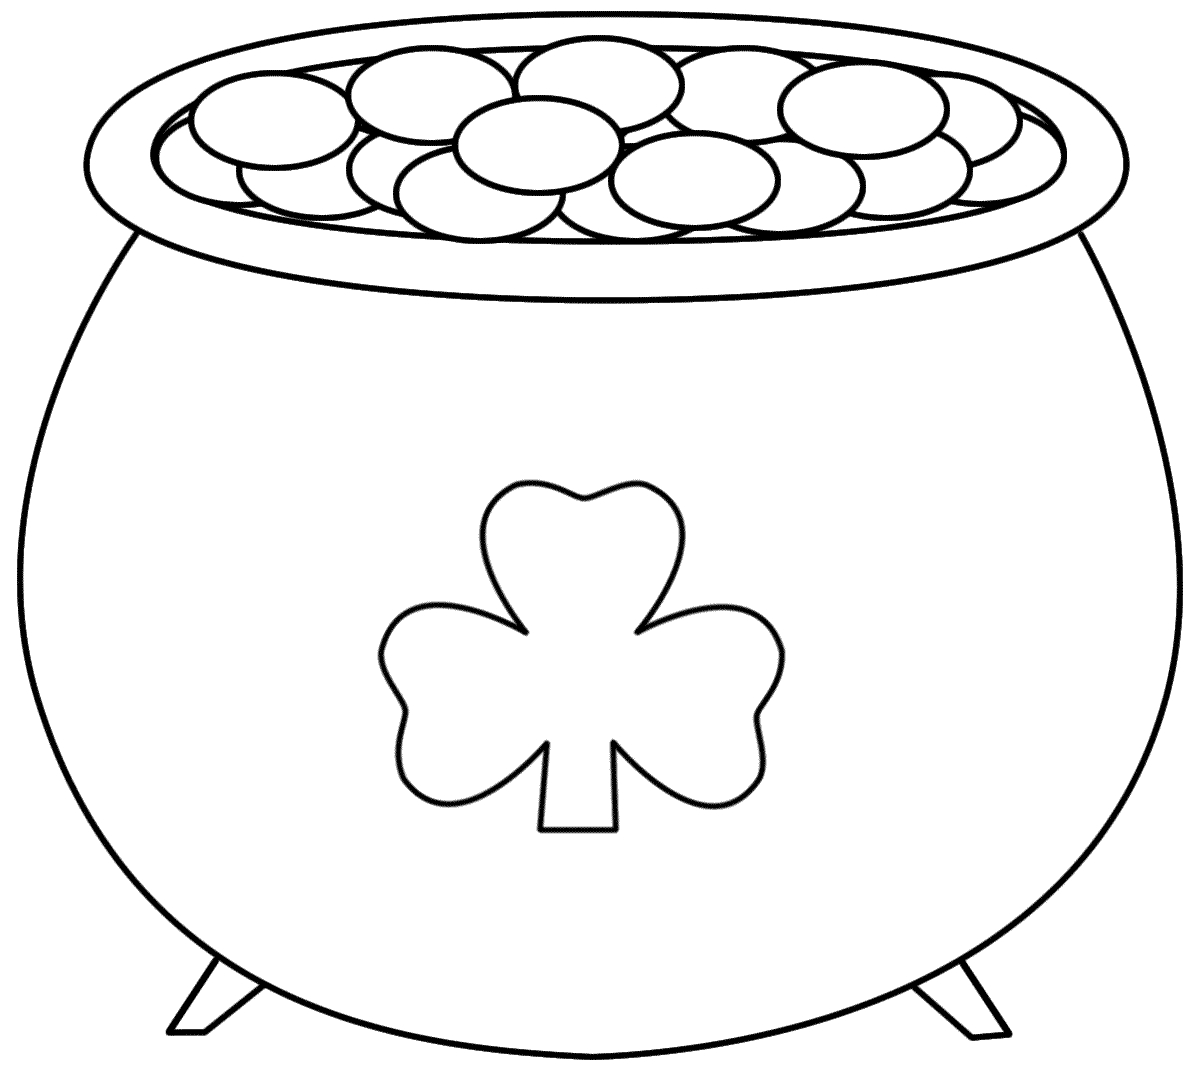 Pot+Of+Gold+Printable   Pot Of Gold - Coloring Pages   Saint - Pot Of Gold Template Free Printable